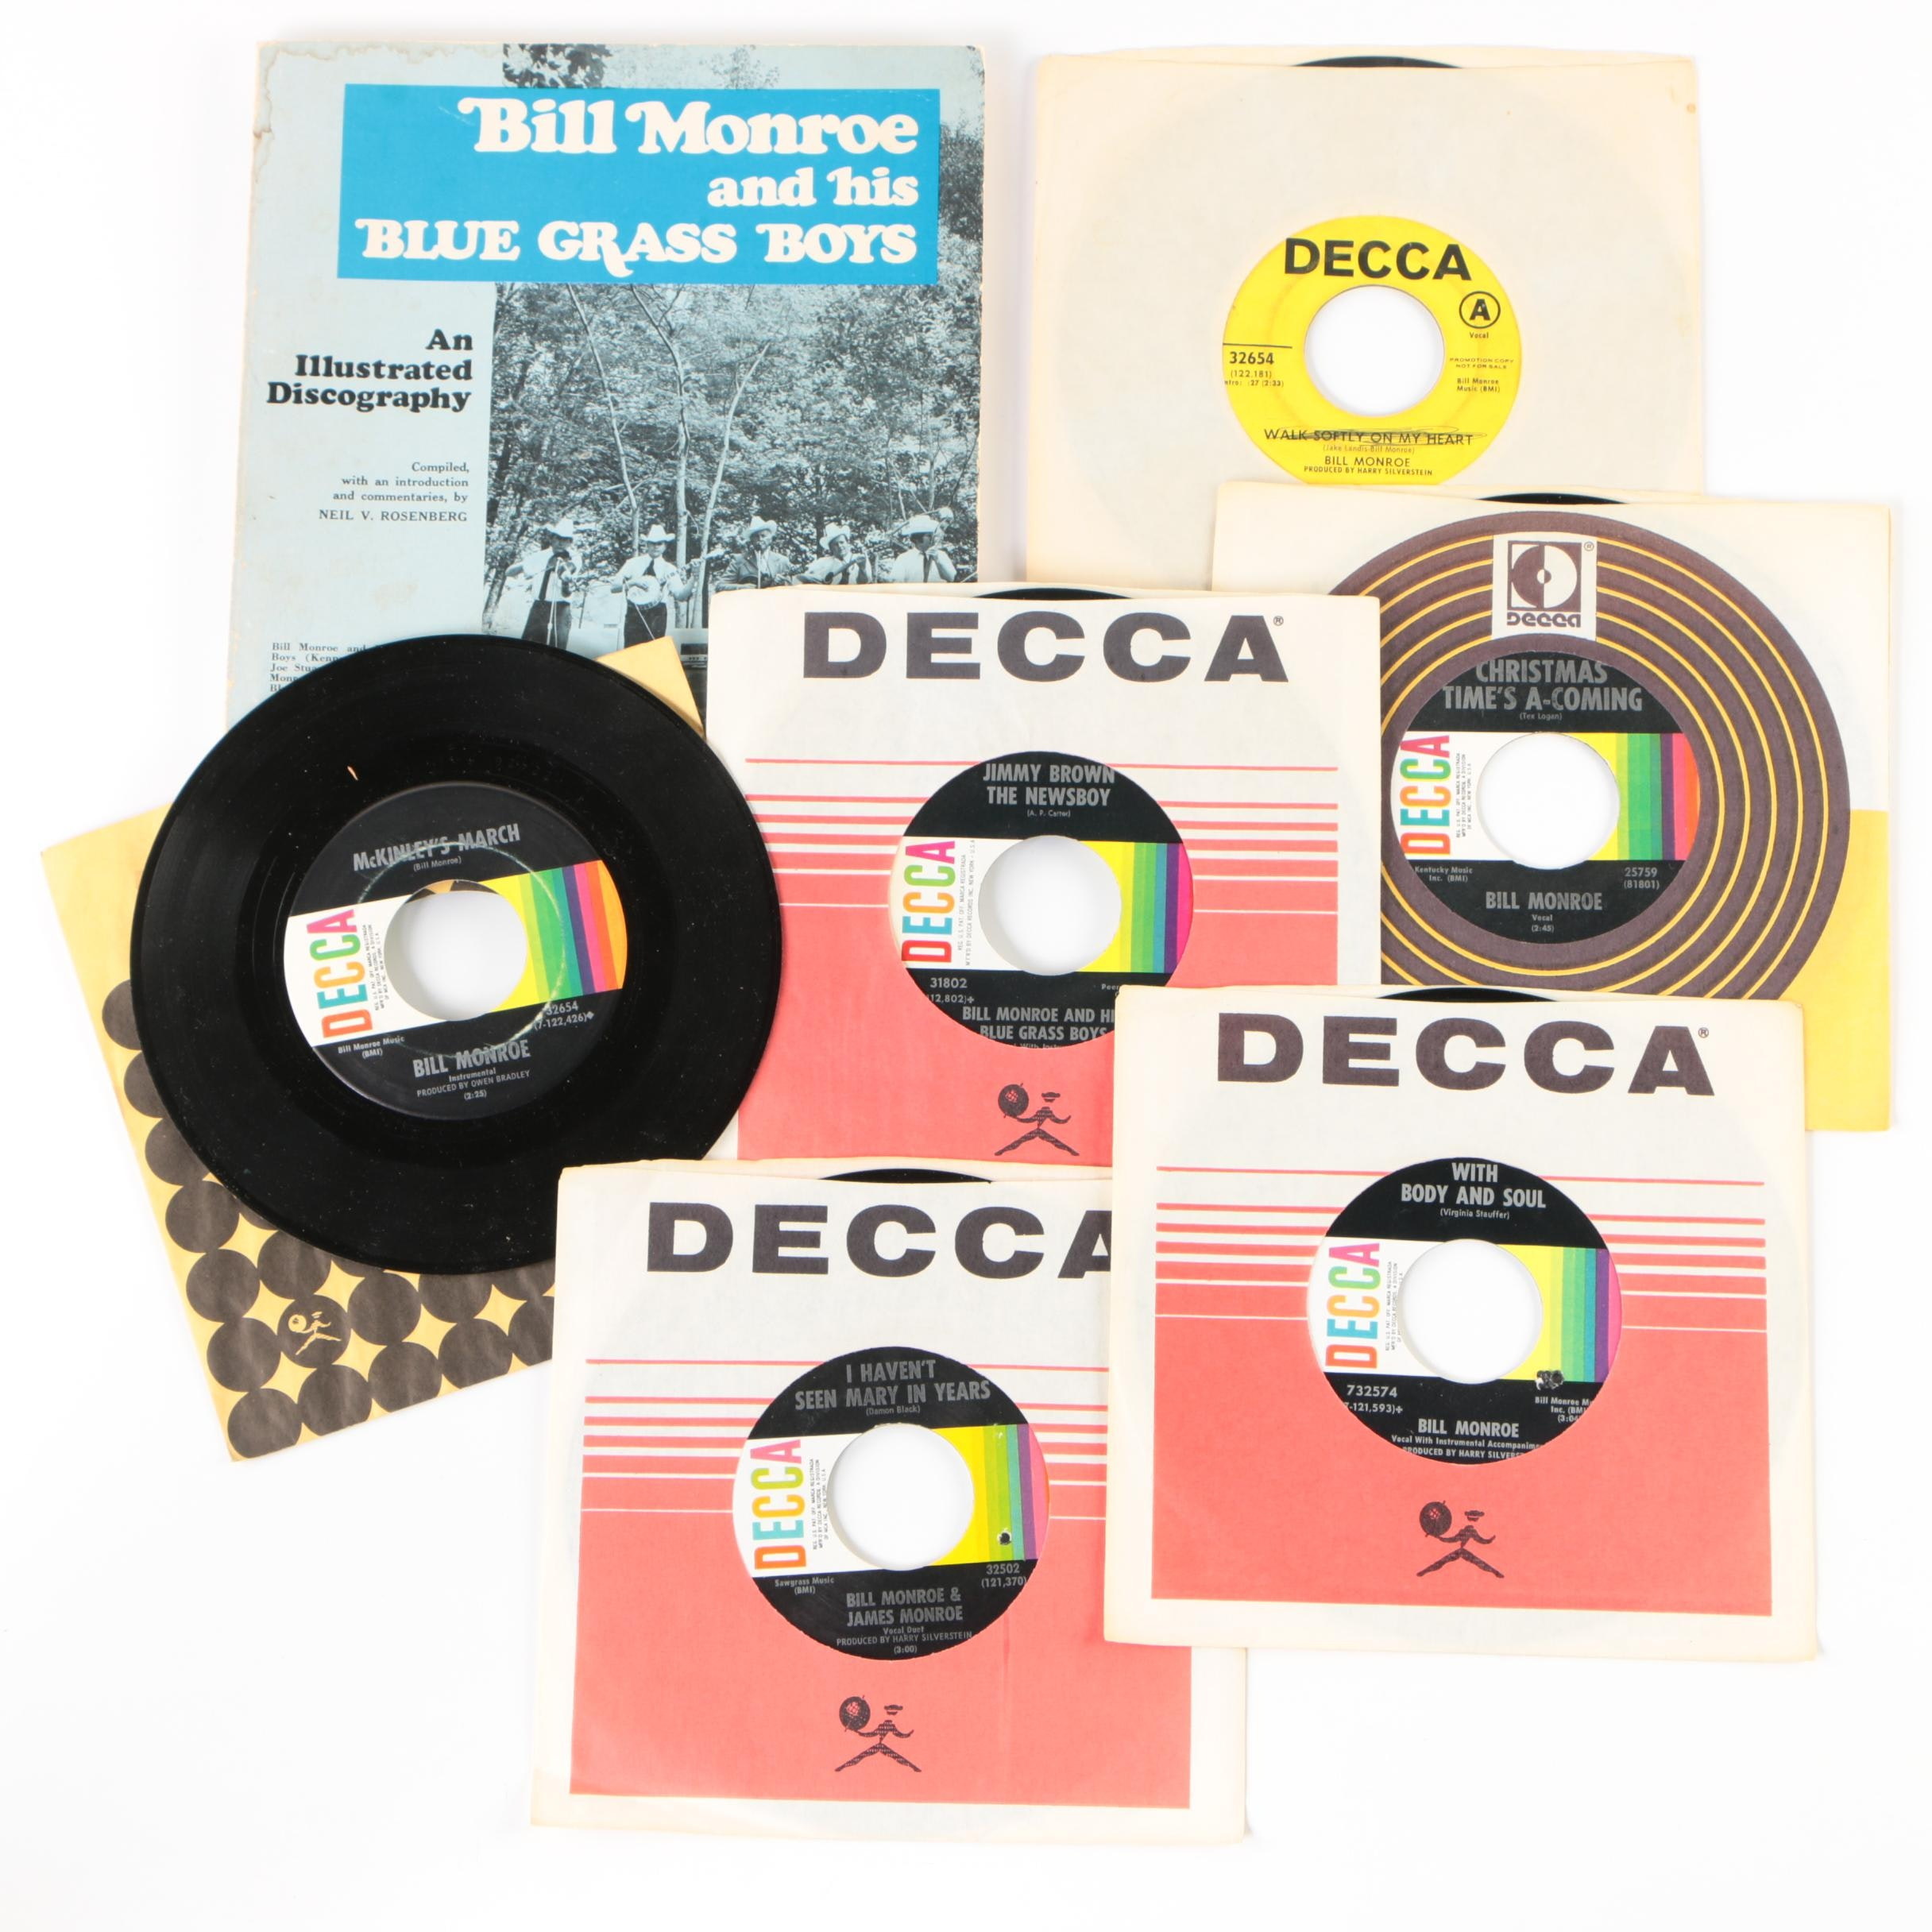 Bill Monroe 45 RPM Vinyl Records and Illustrated Discography Book